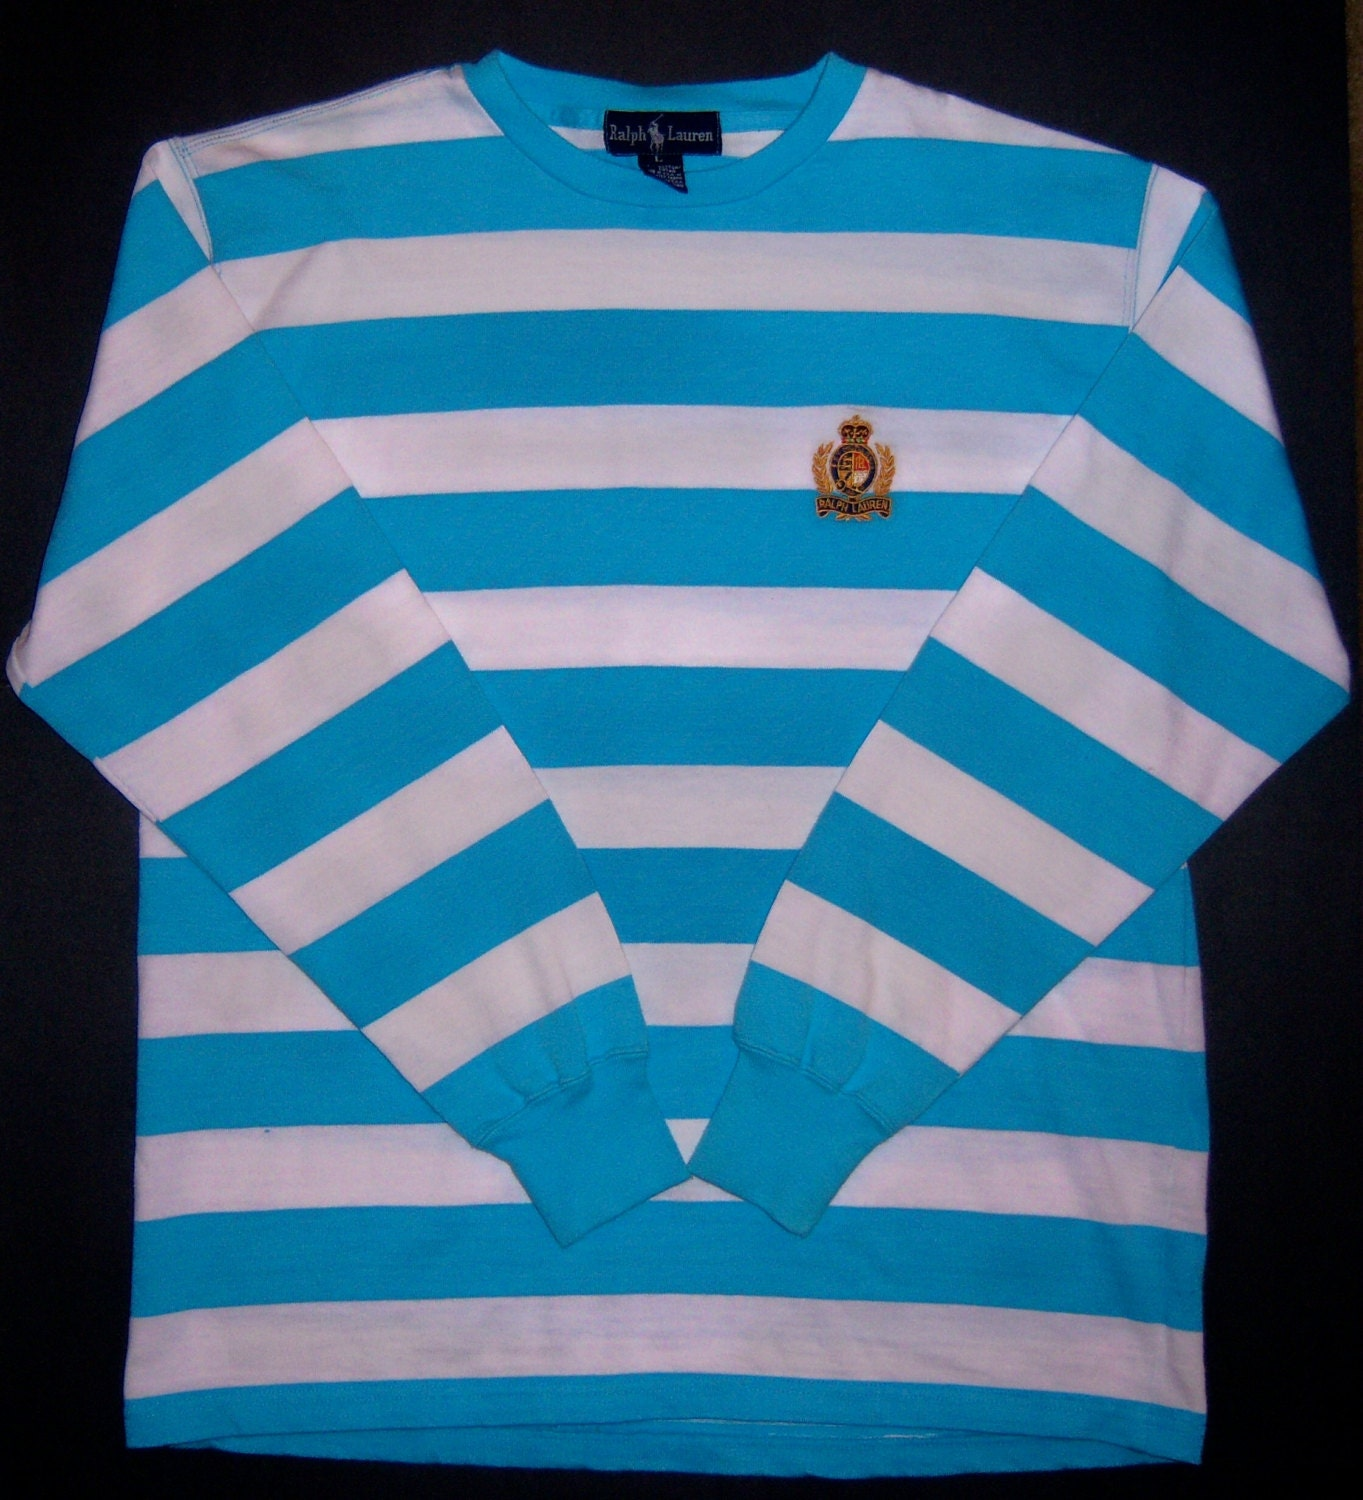 Polo Ralph Turquoise Vintage Striped Rugby Large Lauren Crest Founder's Shirt Blue Ls qSGMVpUz